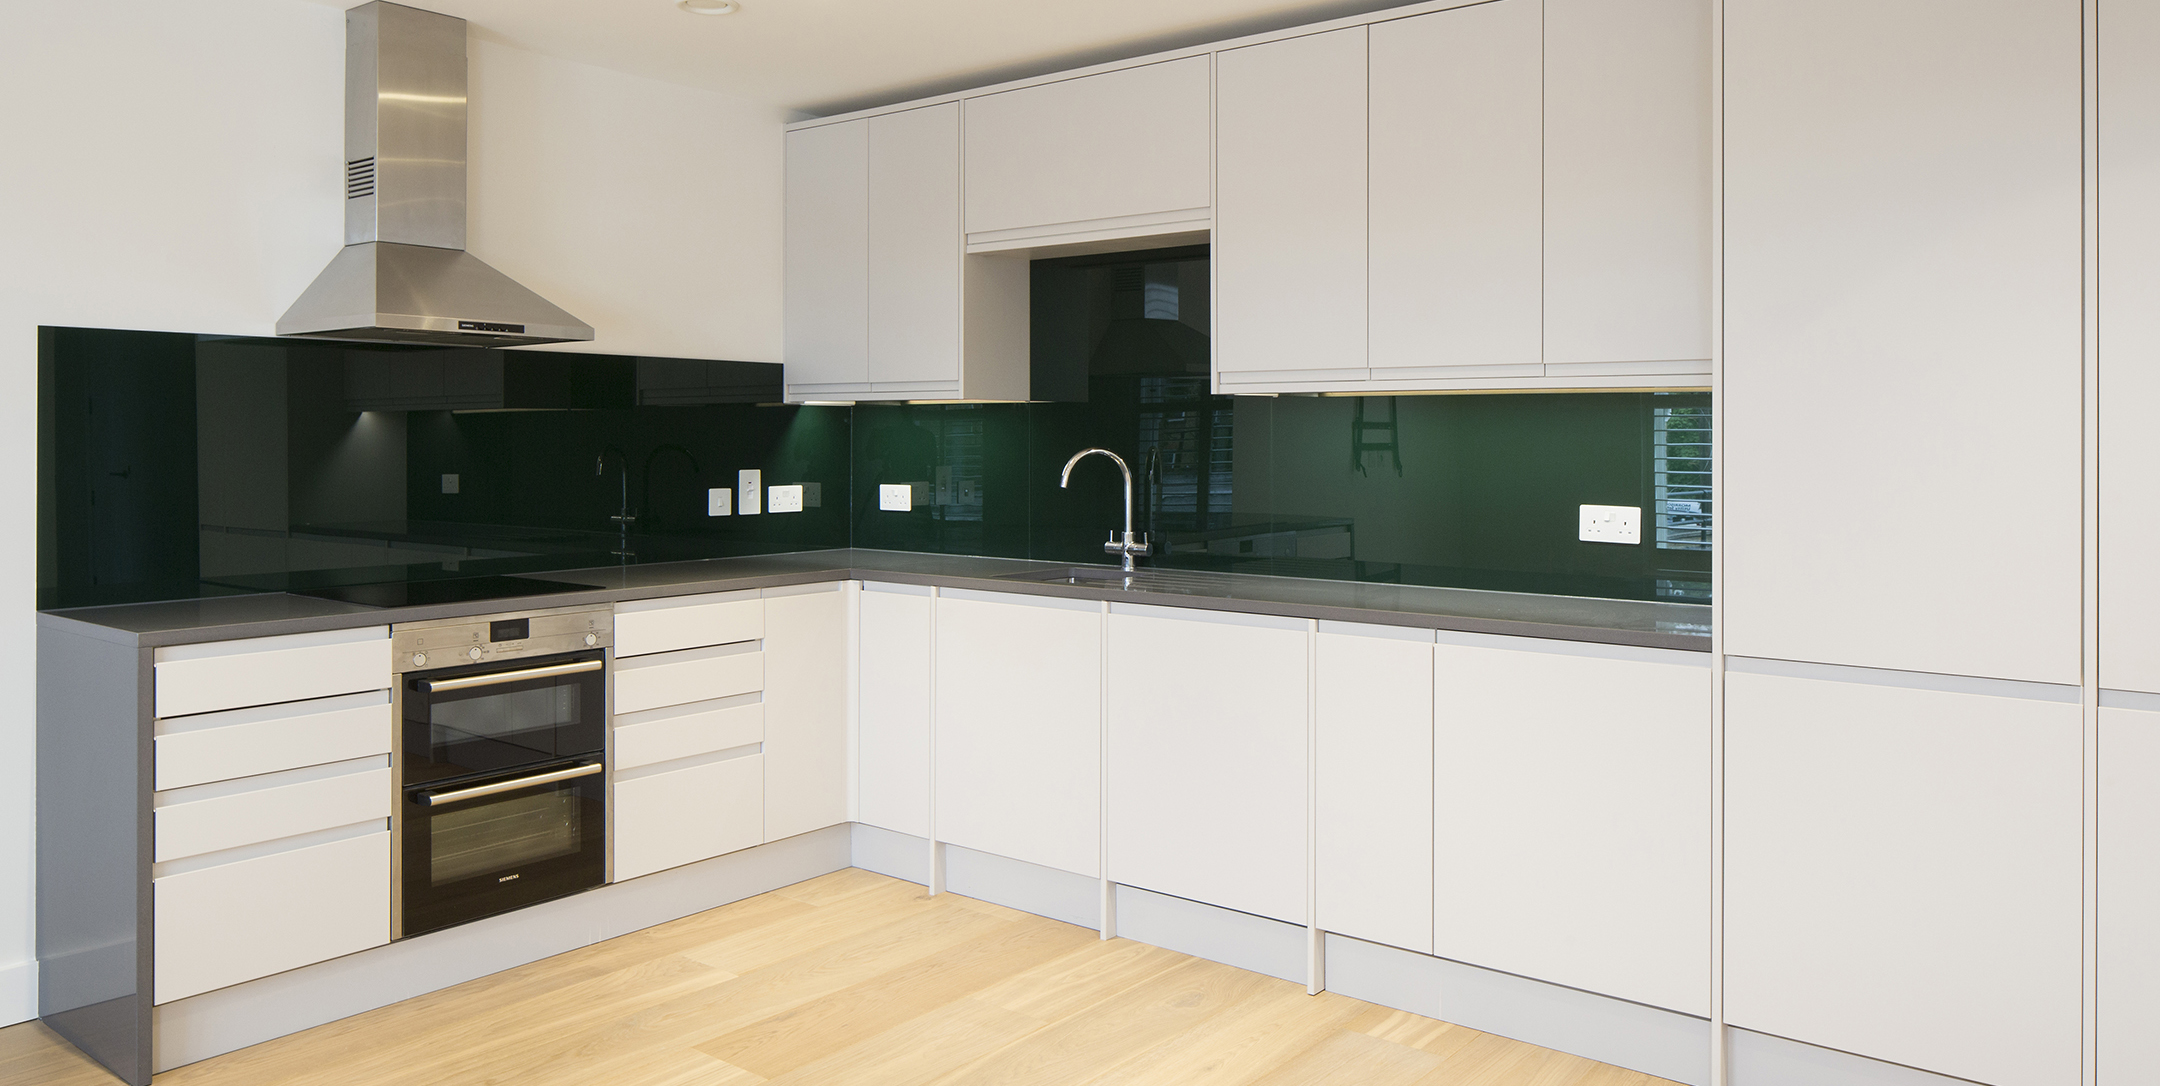 Home Refurbishments Knightsbridge SW7 - Ashville Inc